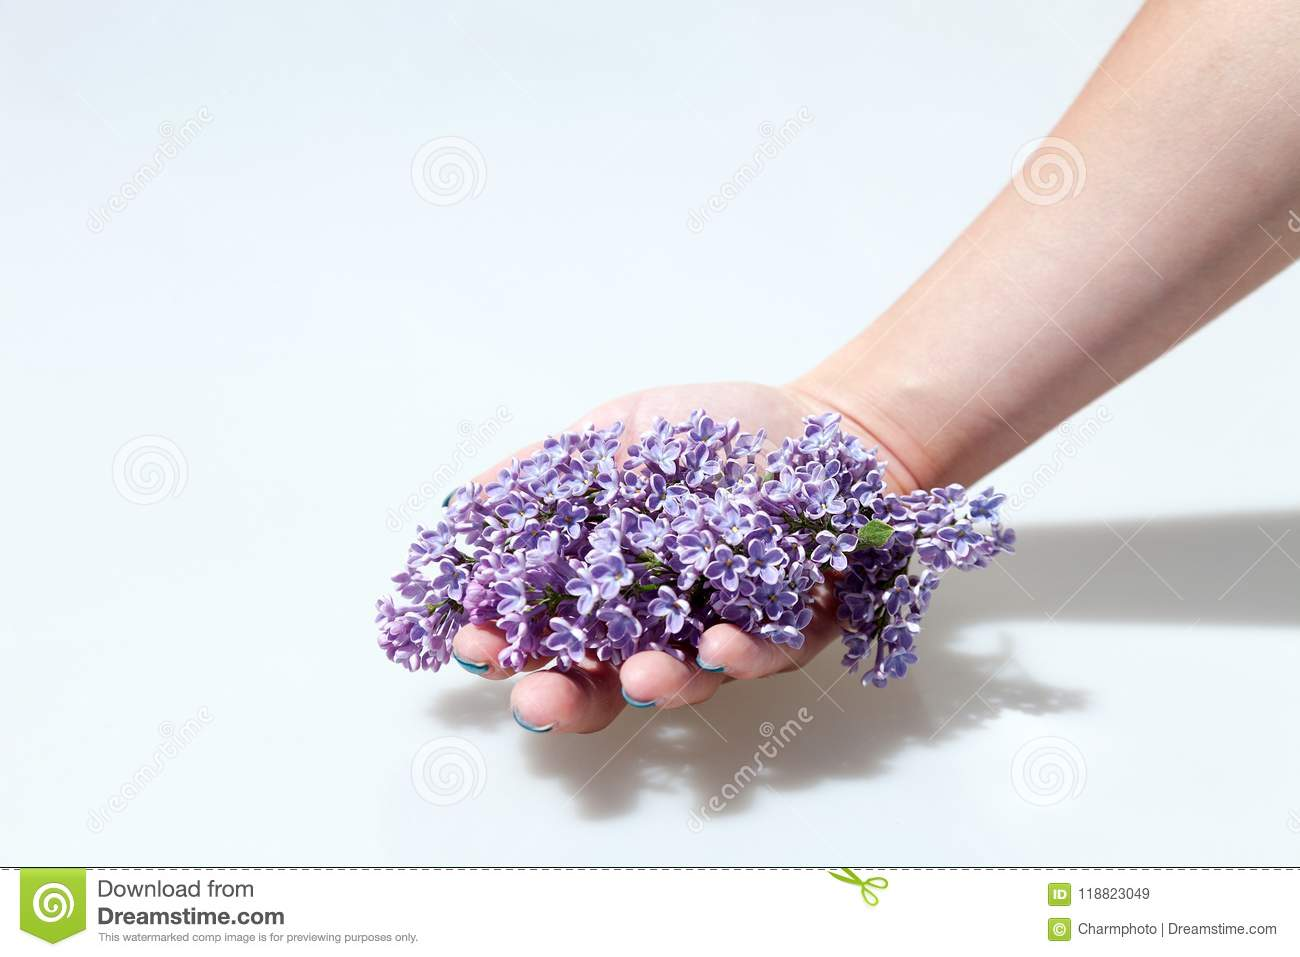 Purple Lilac Flowers Isolated on White Background. Hand giving a flower